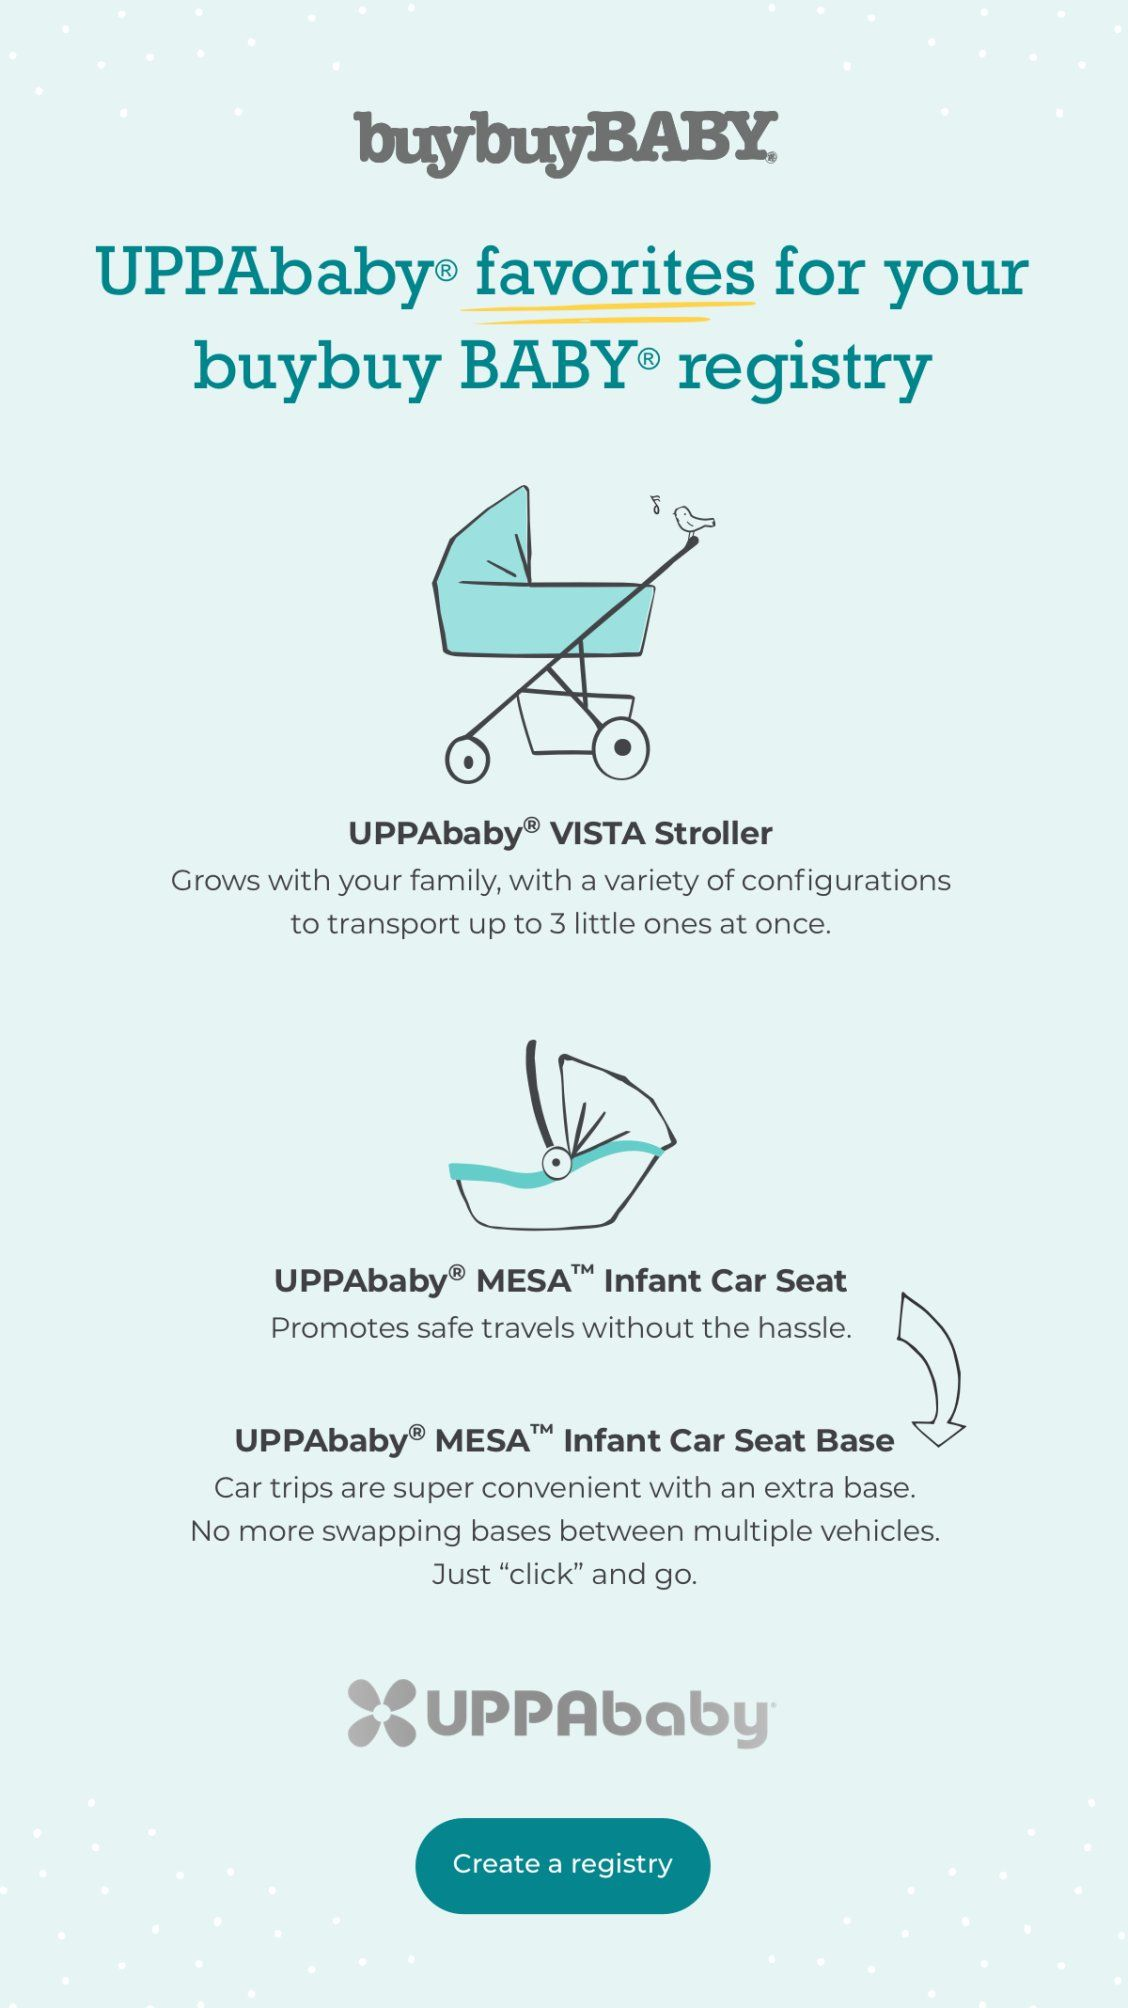 UPPAbaby favorites for your buybuy BABY registry. in 2020 ...